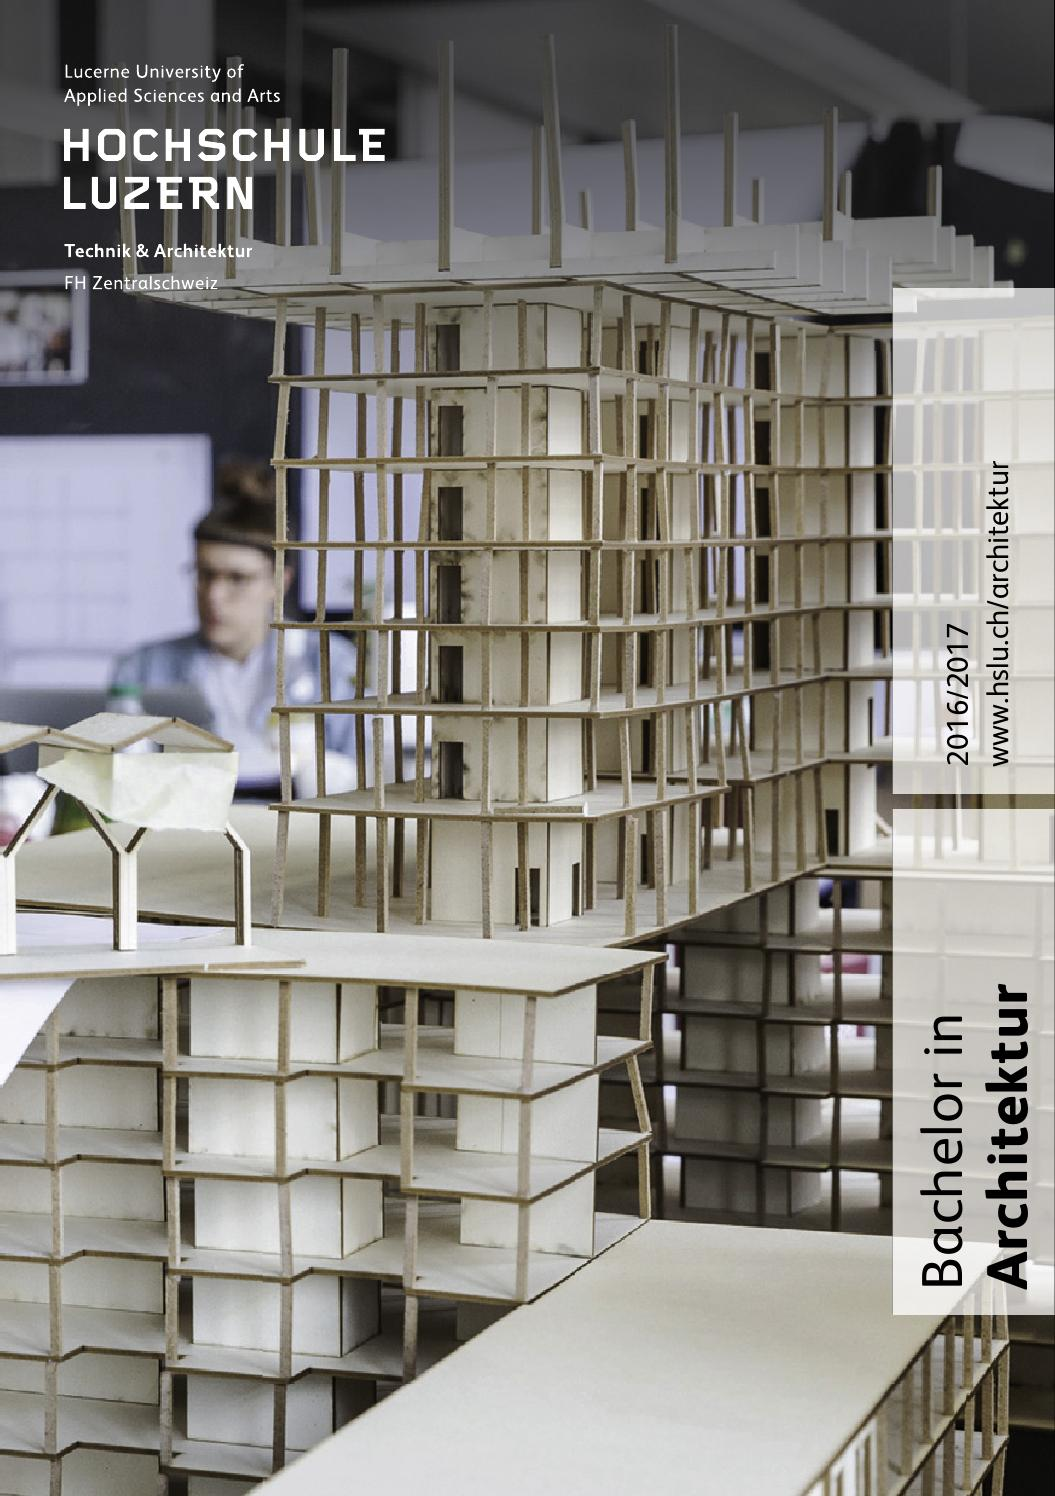 Studienf hrer bachelor architektur 2016 2017 by hochschule - Skelettbau architektur ...